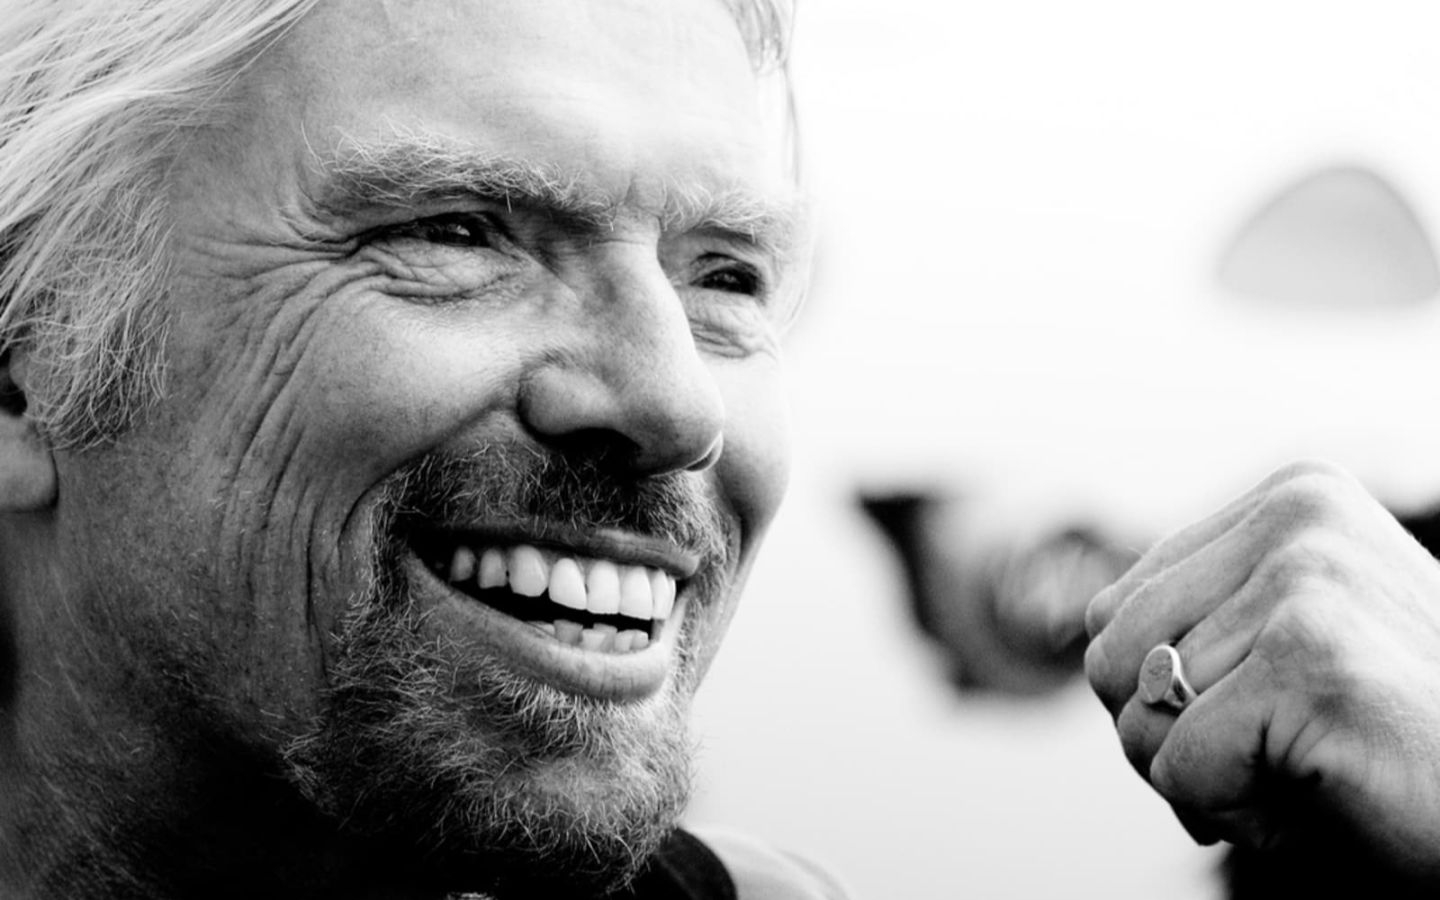 Close up black and white photo of Richard Branson smiling with clenched fist